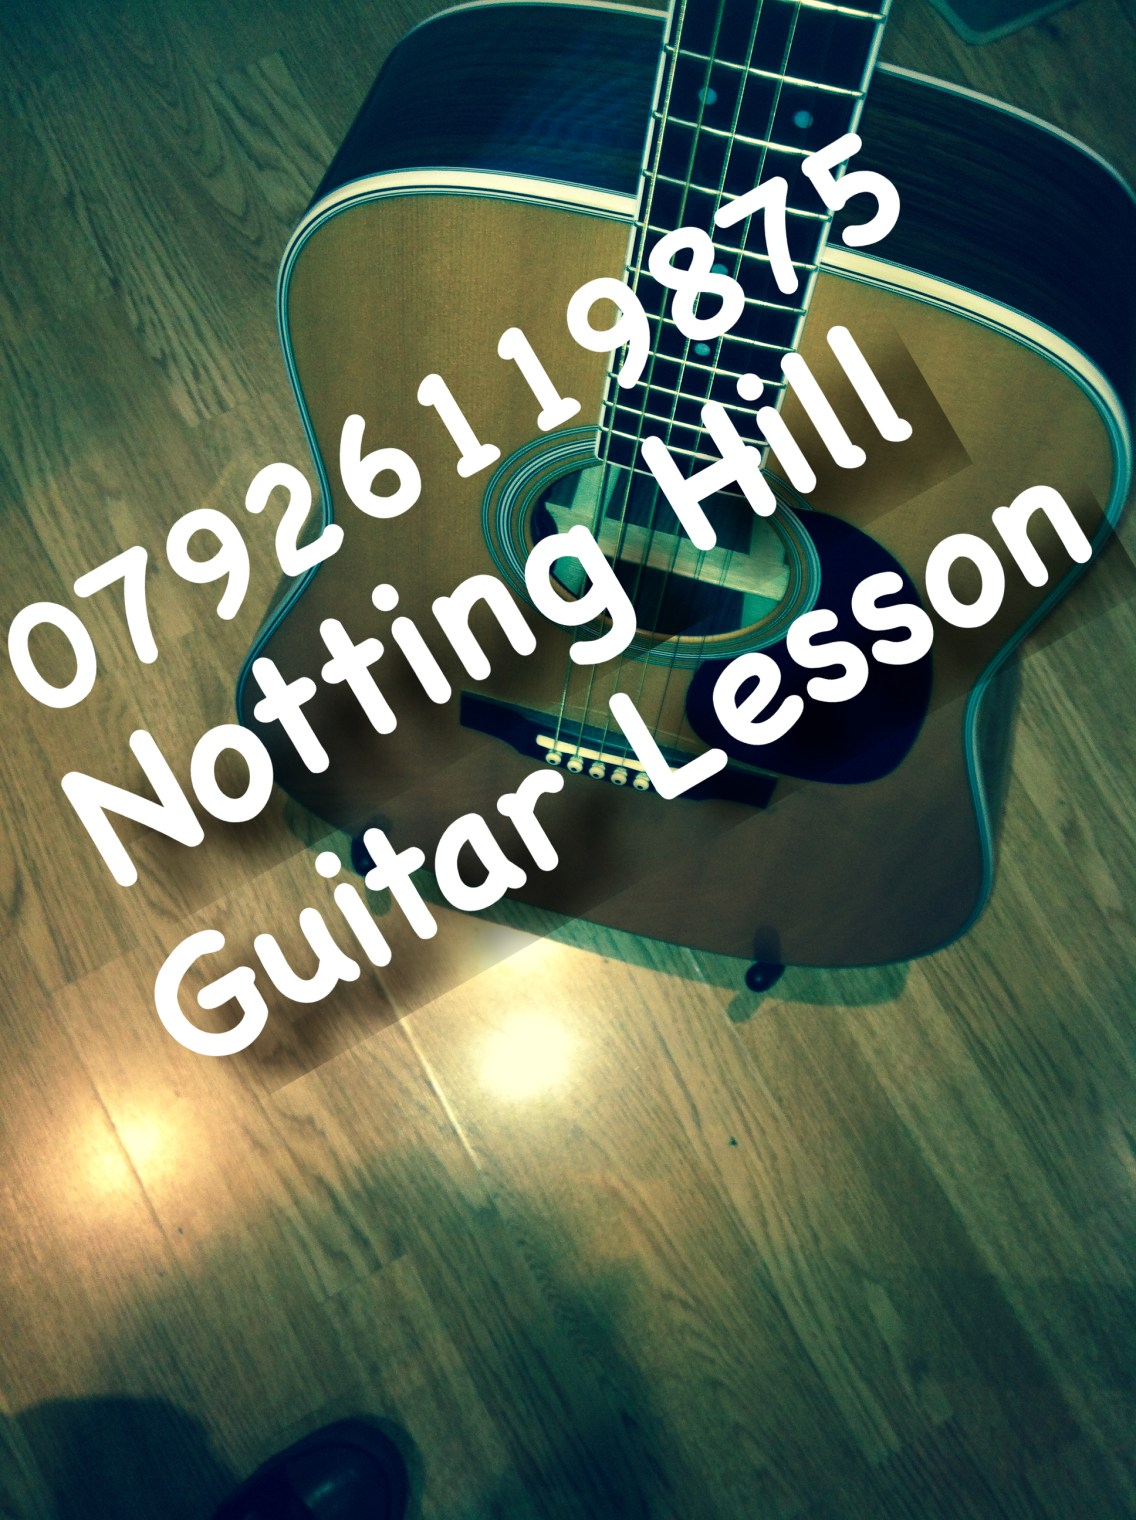 Notting Hill Guitar Lesson - Guitar Lesson Portobello, Kensington, Maida Vale, Queensway, St Johns Wood, Ladbroke GroveBayswater, Latimer Road, Queensway, Holland Park by Marco Cirillo - Learn Guitar in Notting Hill